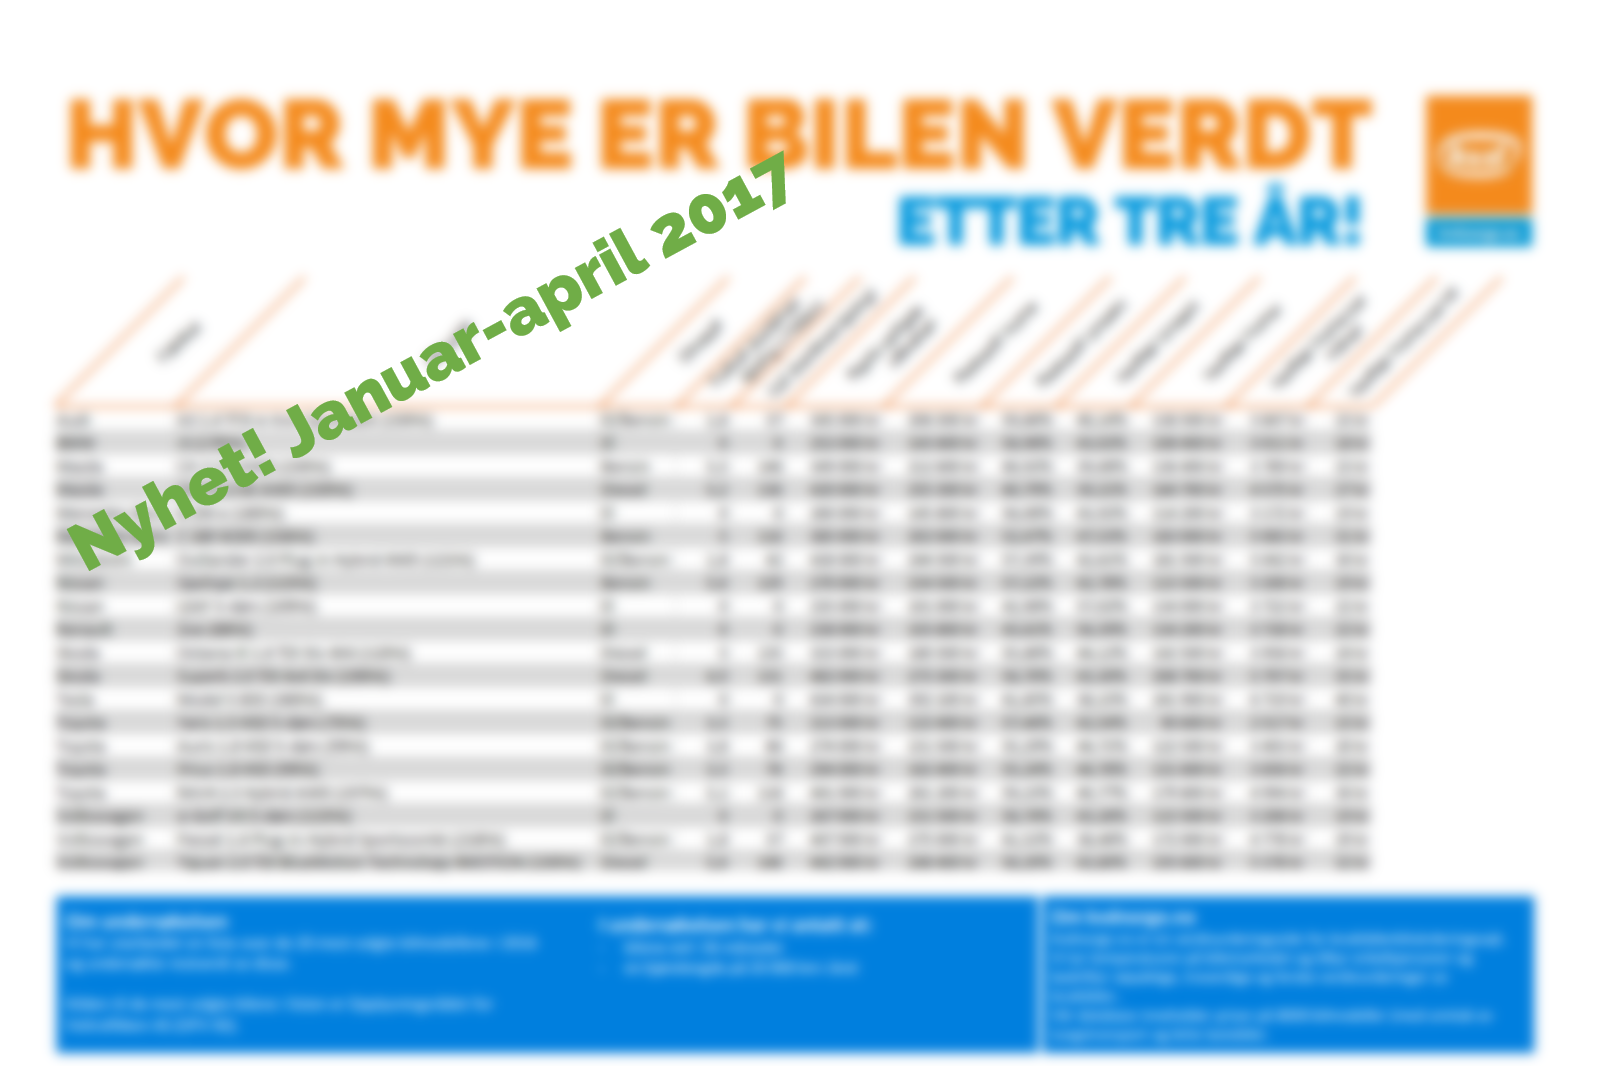 norge_nyhet